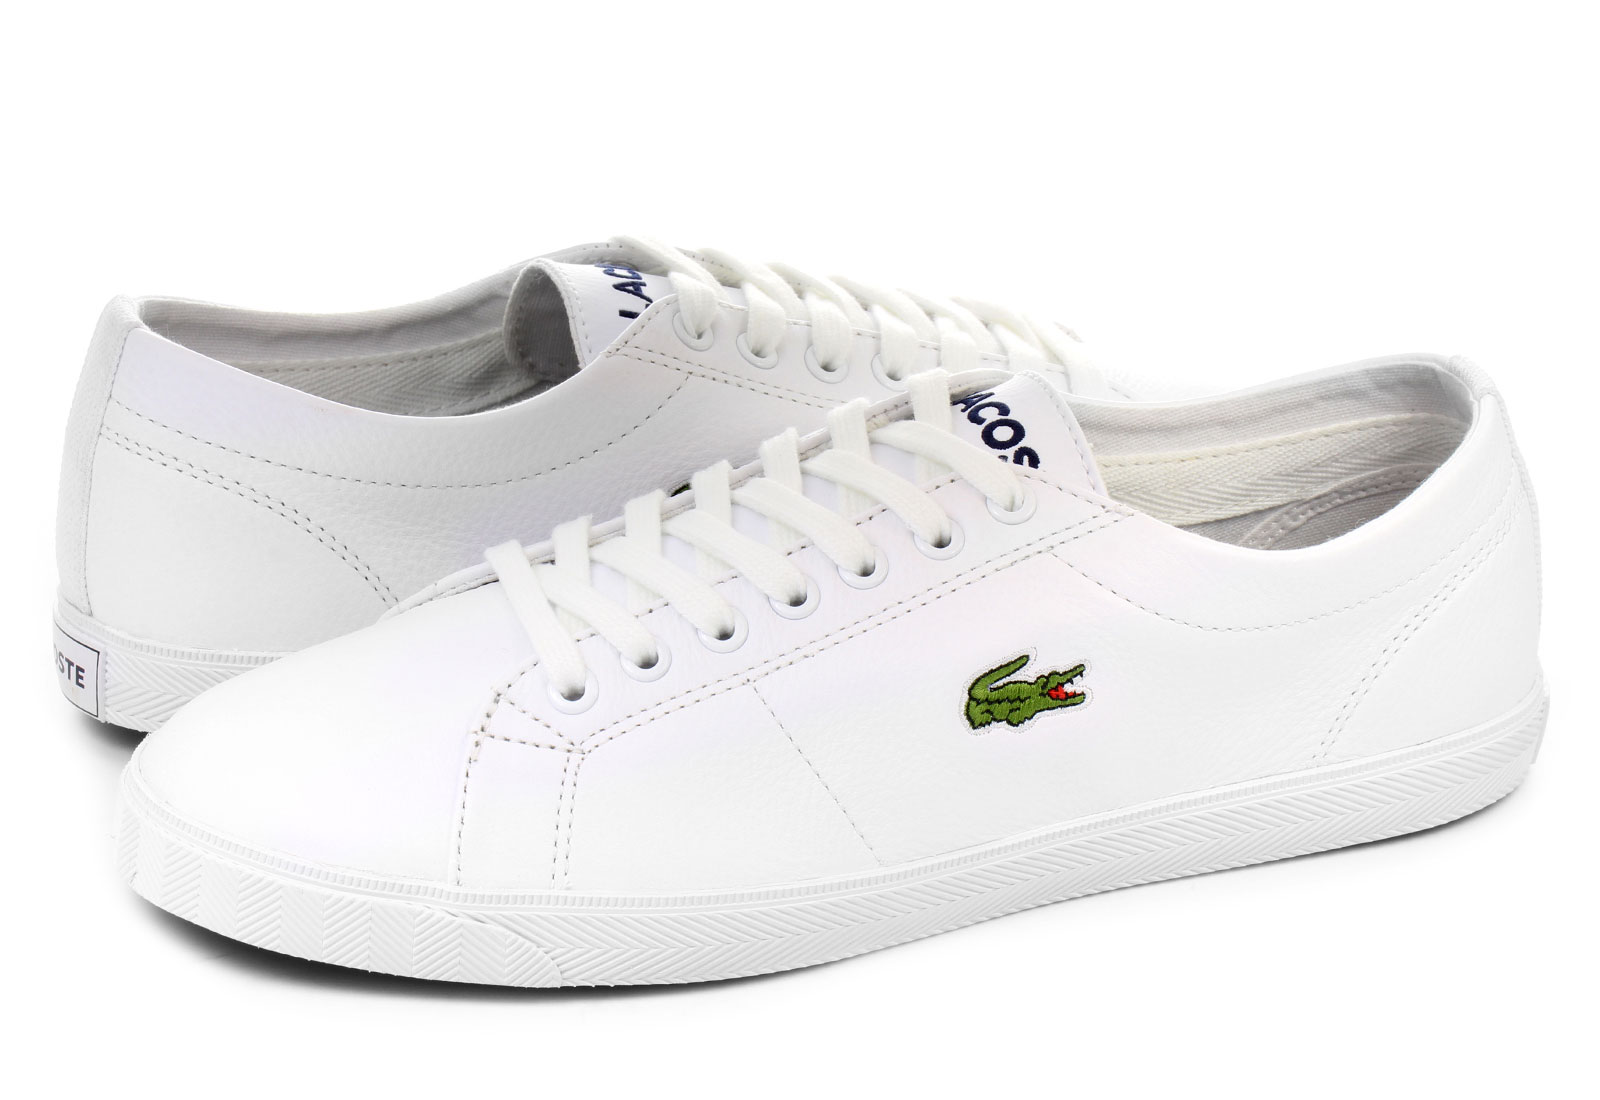 Lacoste Shoes - marcel - 161spm0100-x96 - Online shop for sneakers ... 21e4acfcb1